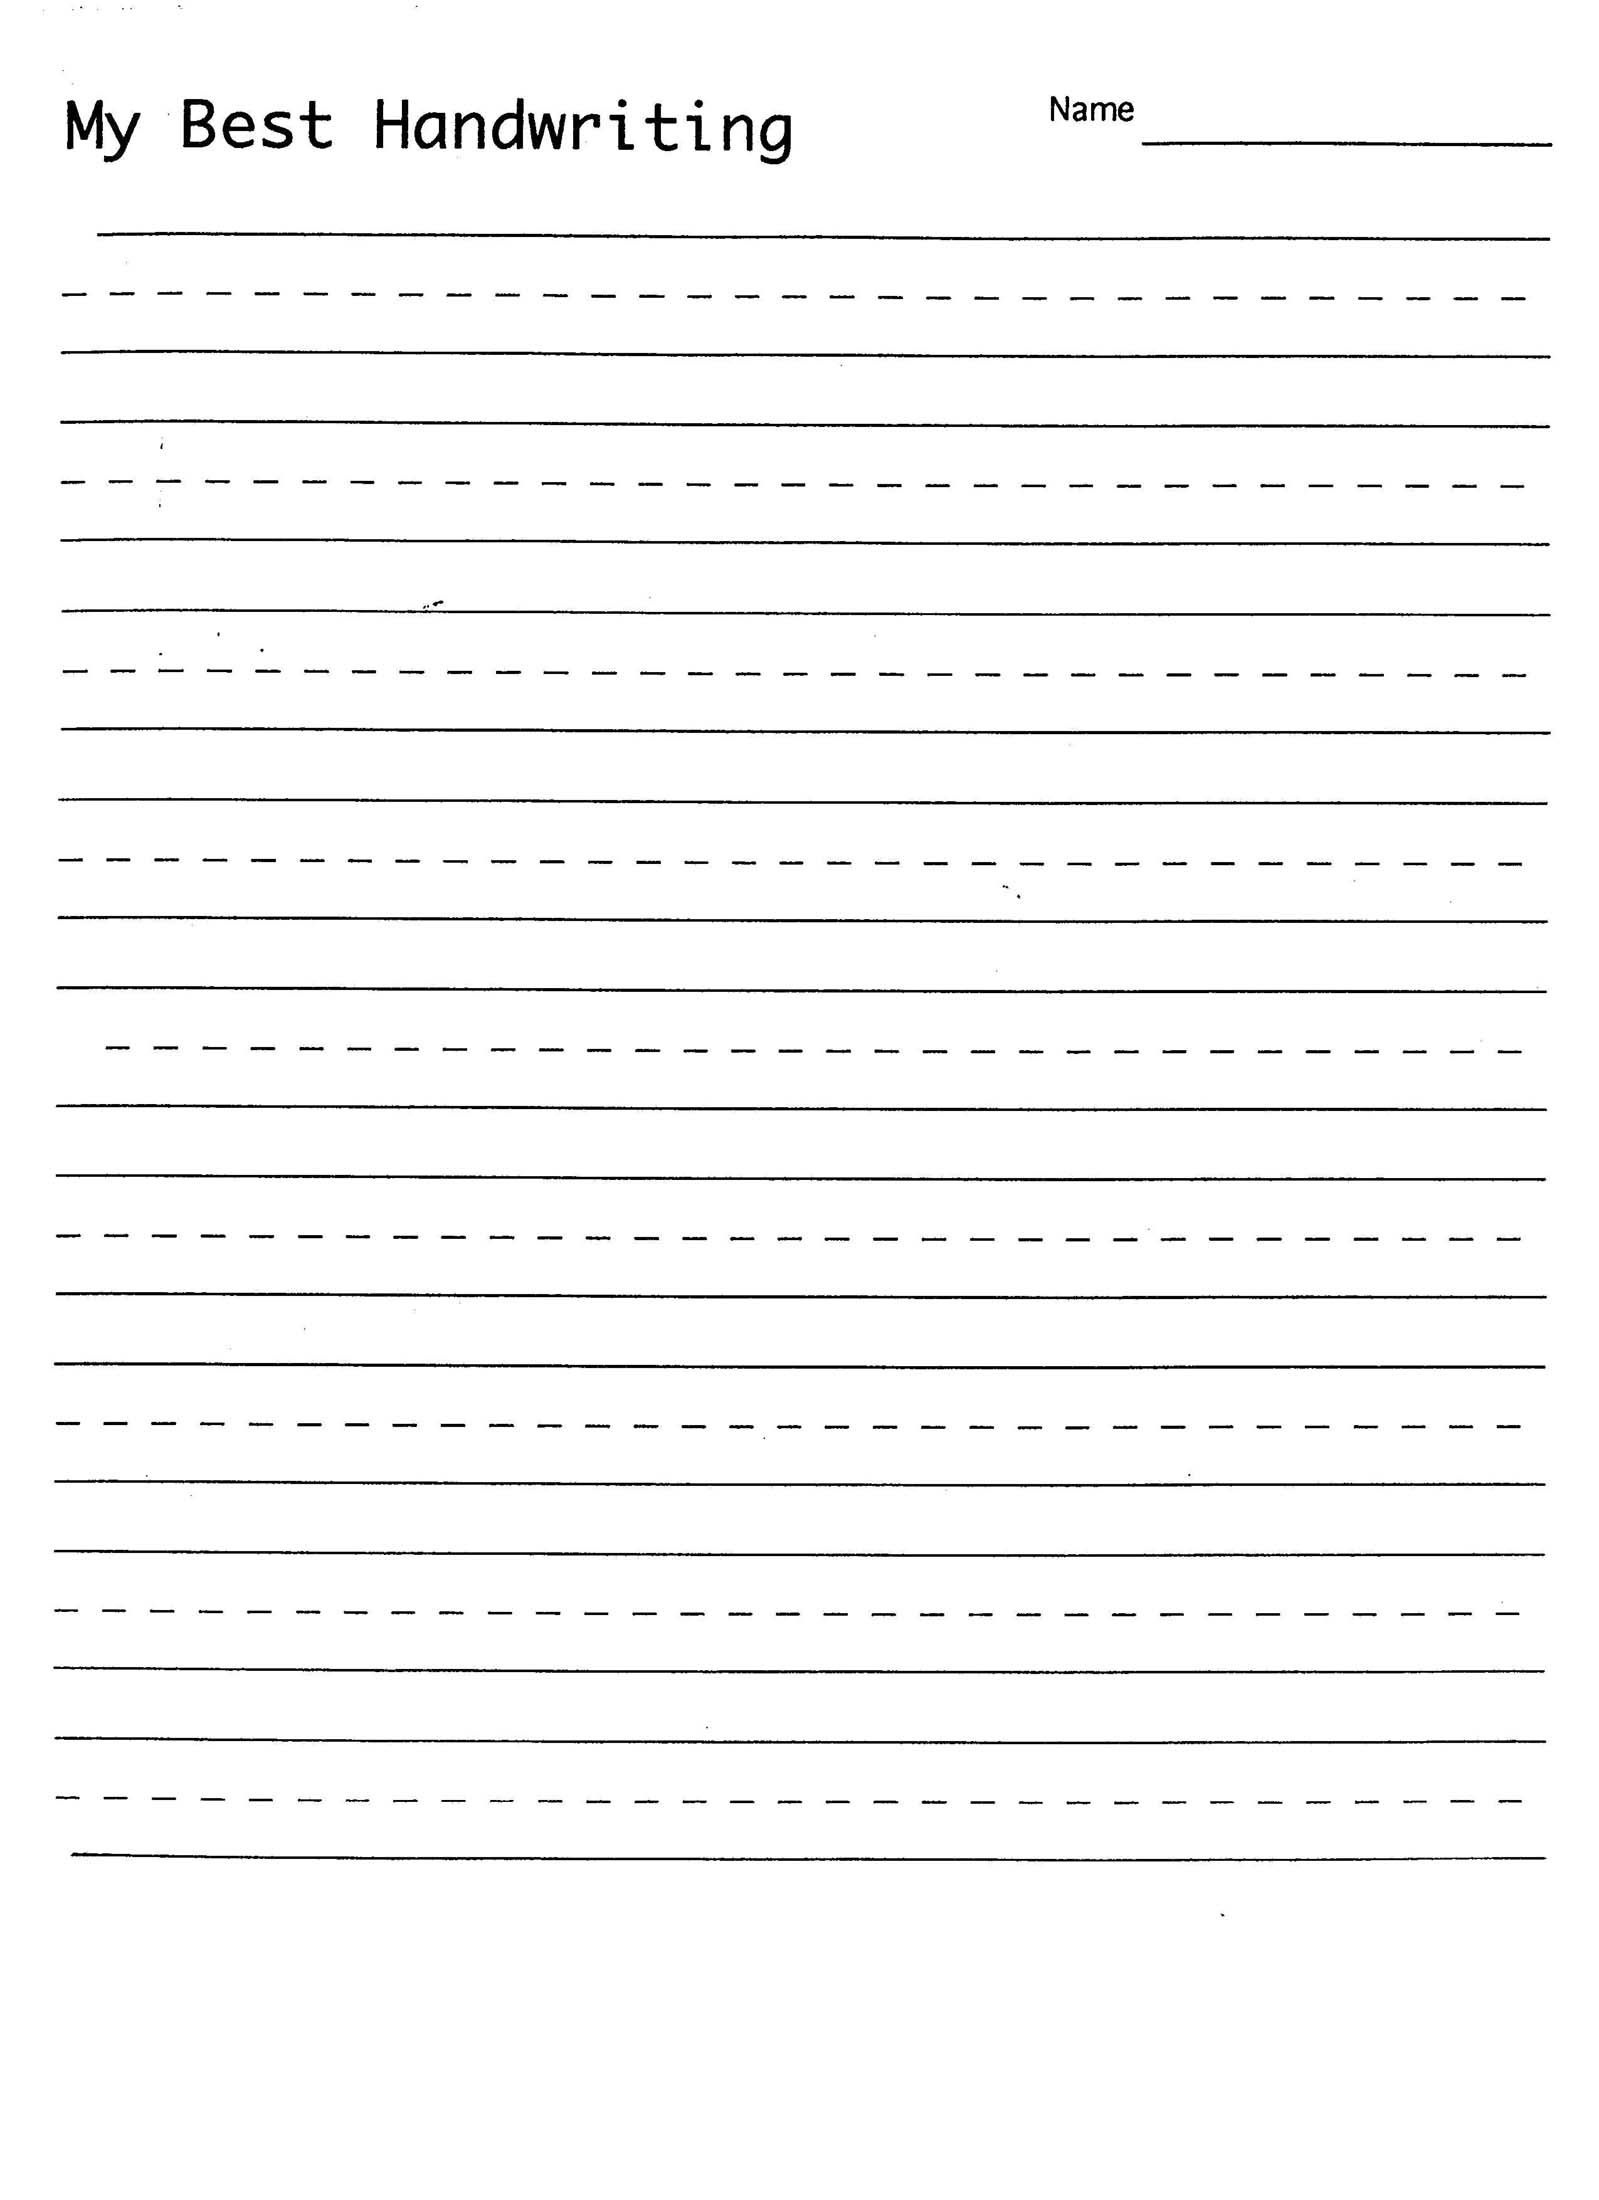 Free Printable Blank Handwriting Worksheets